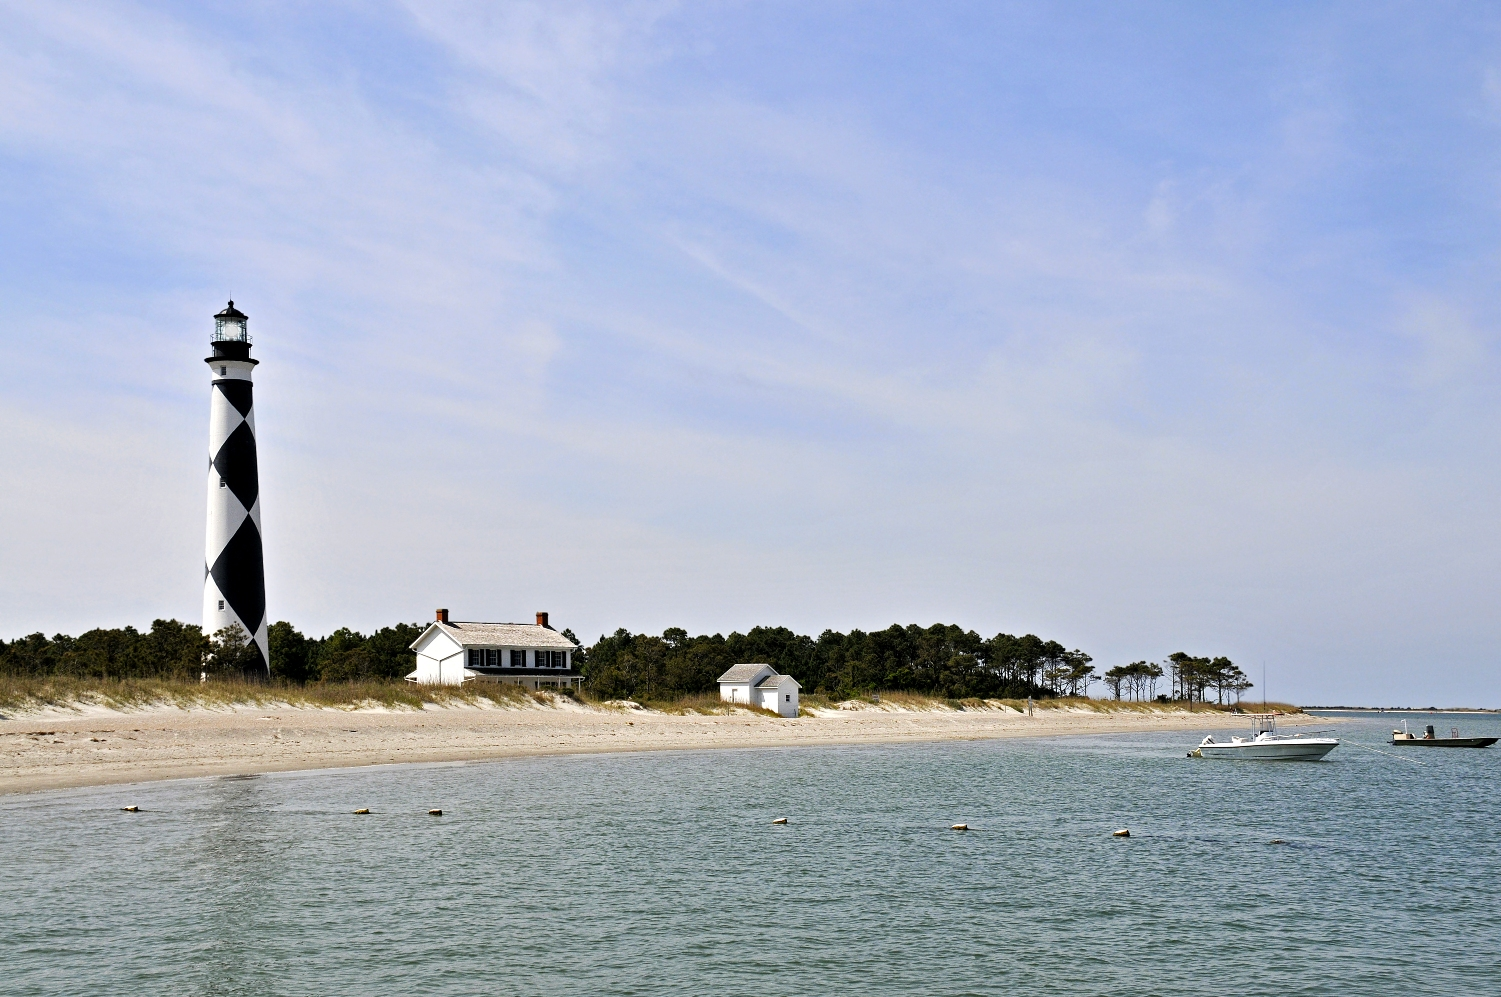 8-21-2014 Camping - Cape Lookout Lighthouse